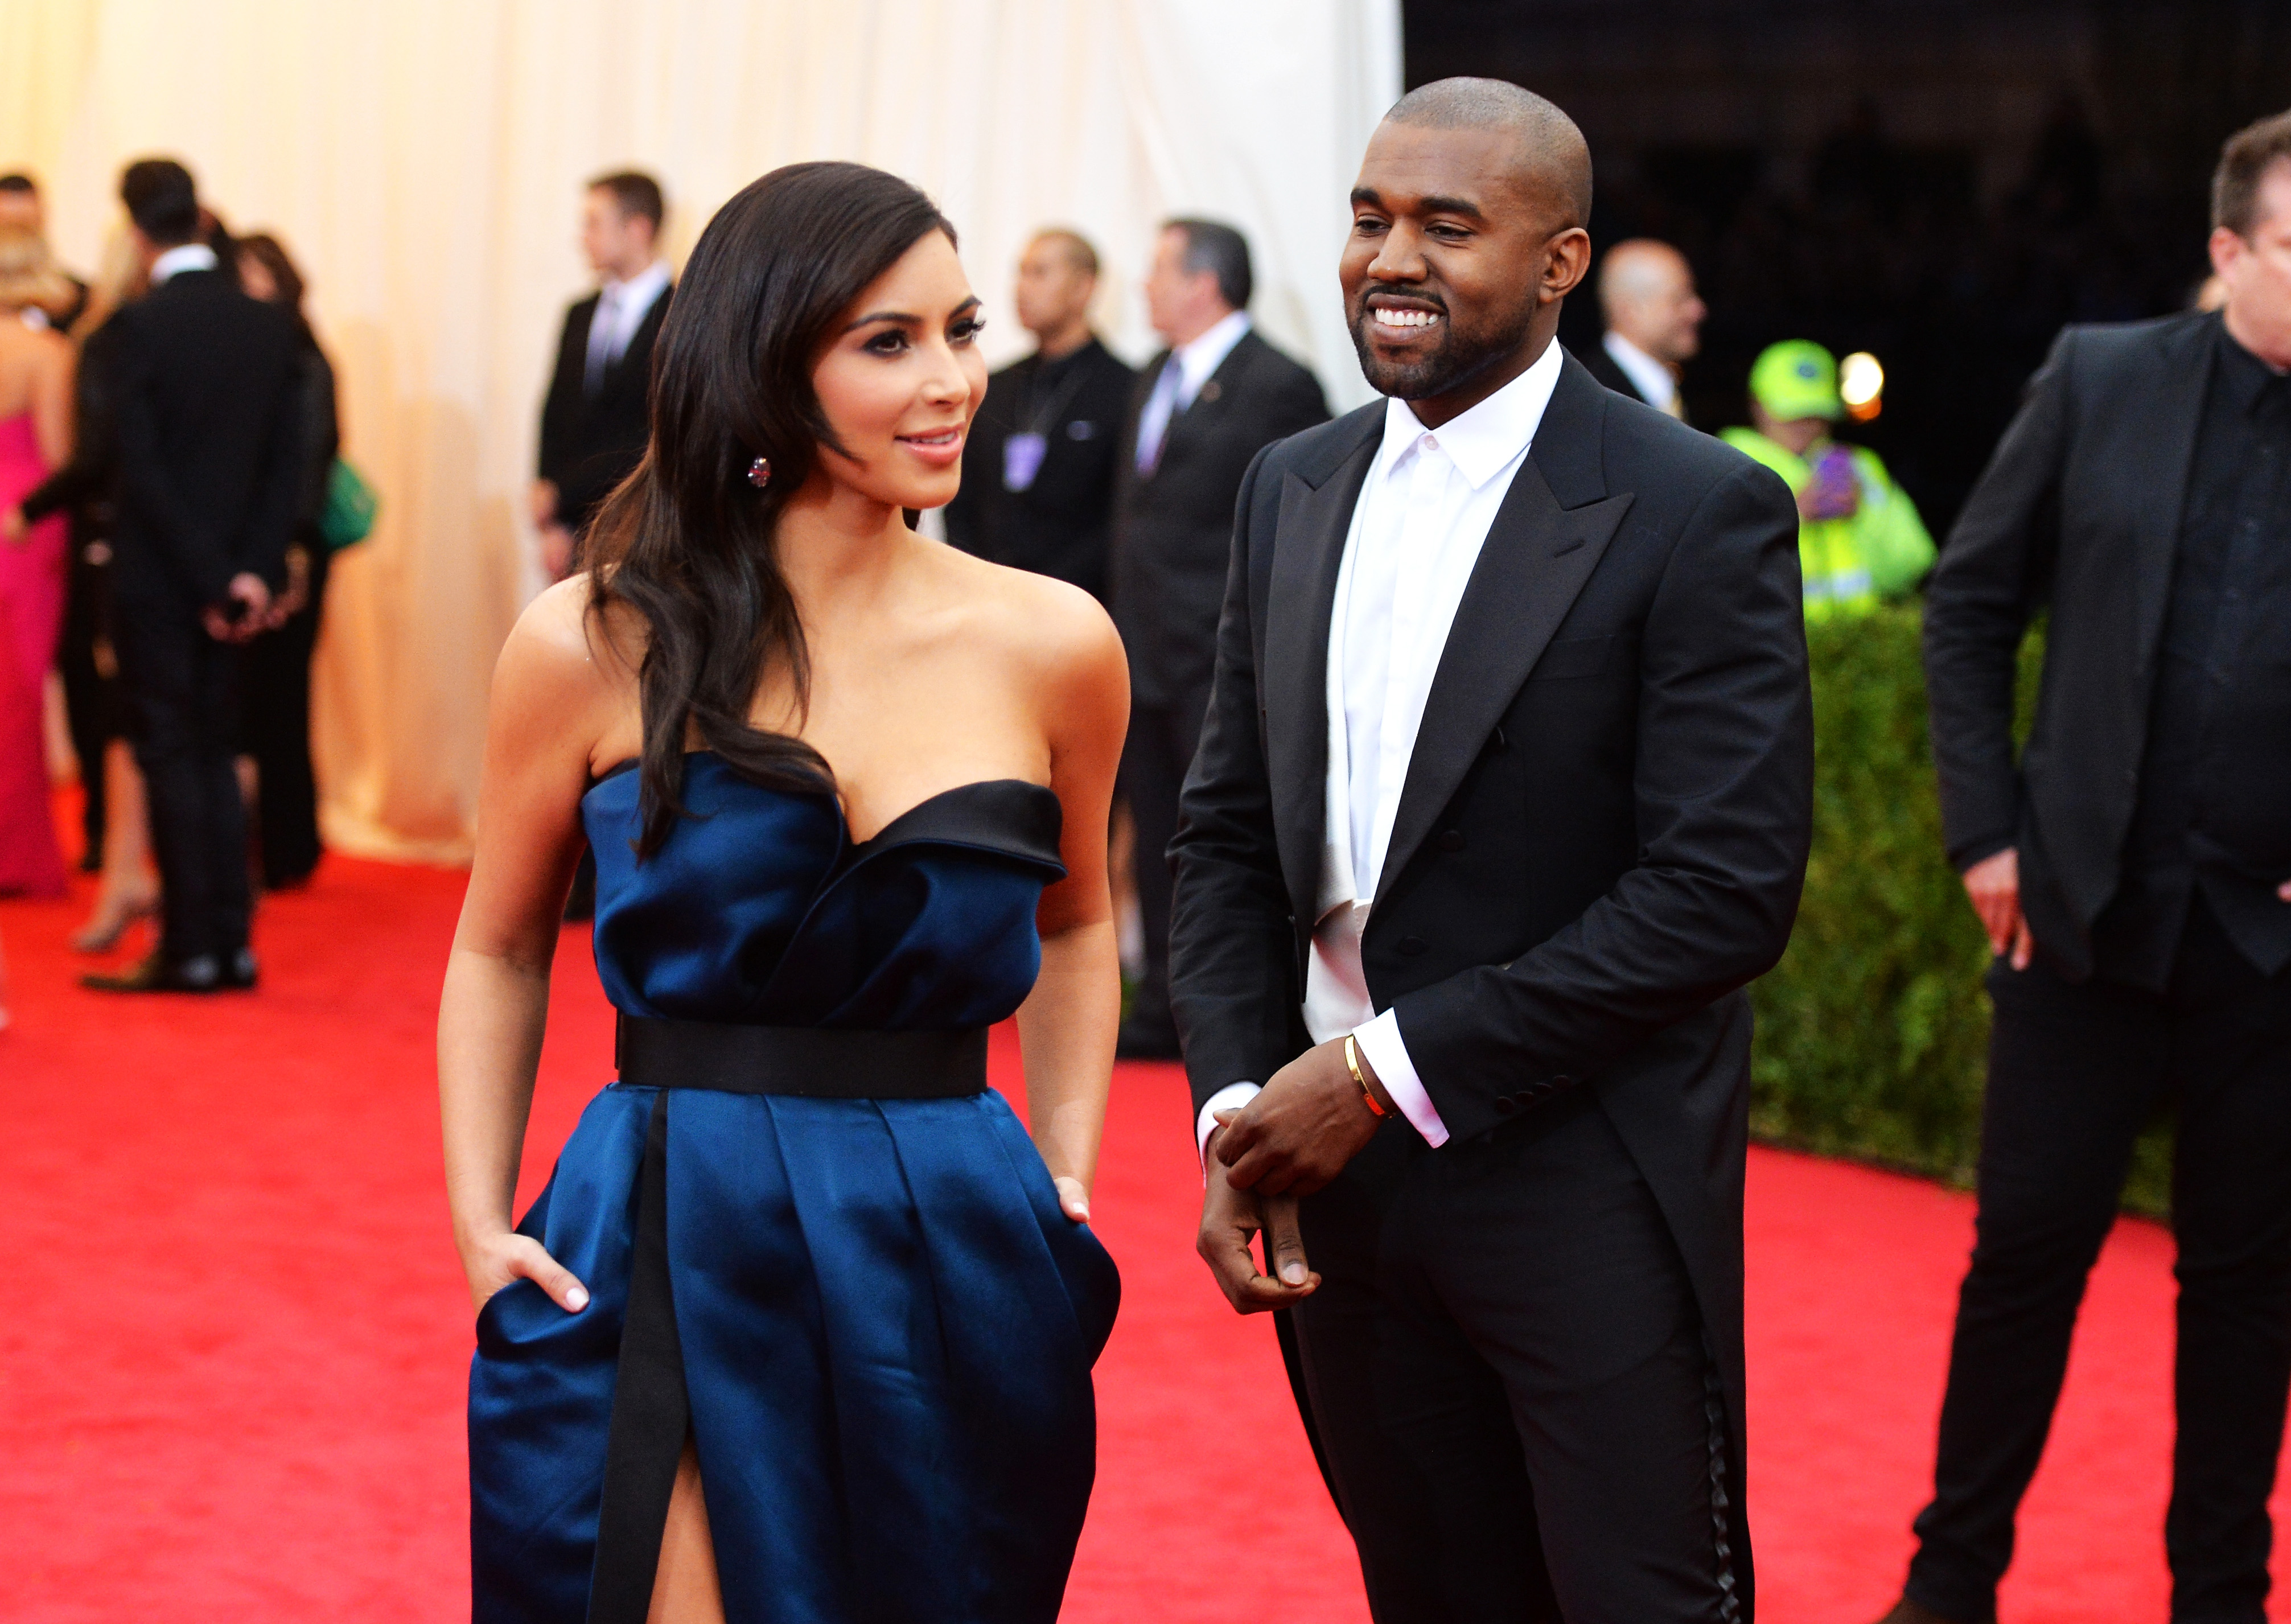 Kanye West has *very* strong feelings on all of Kim K's nude selfies